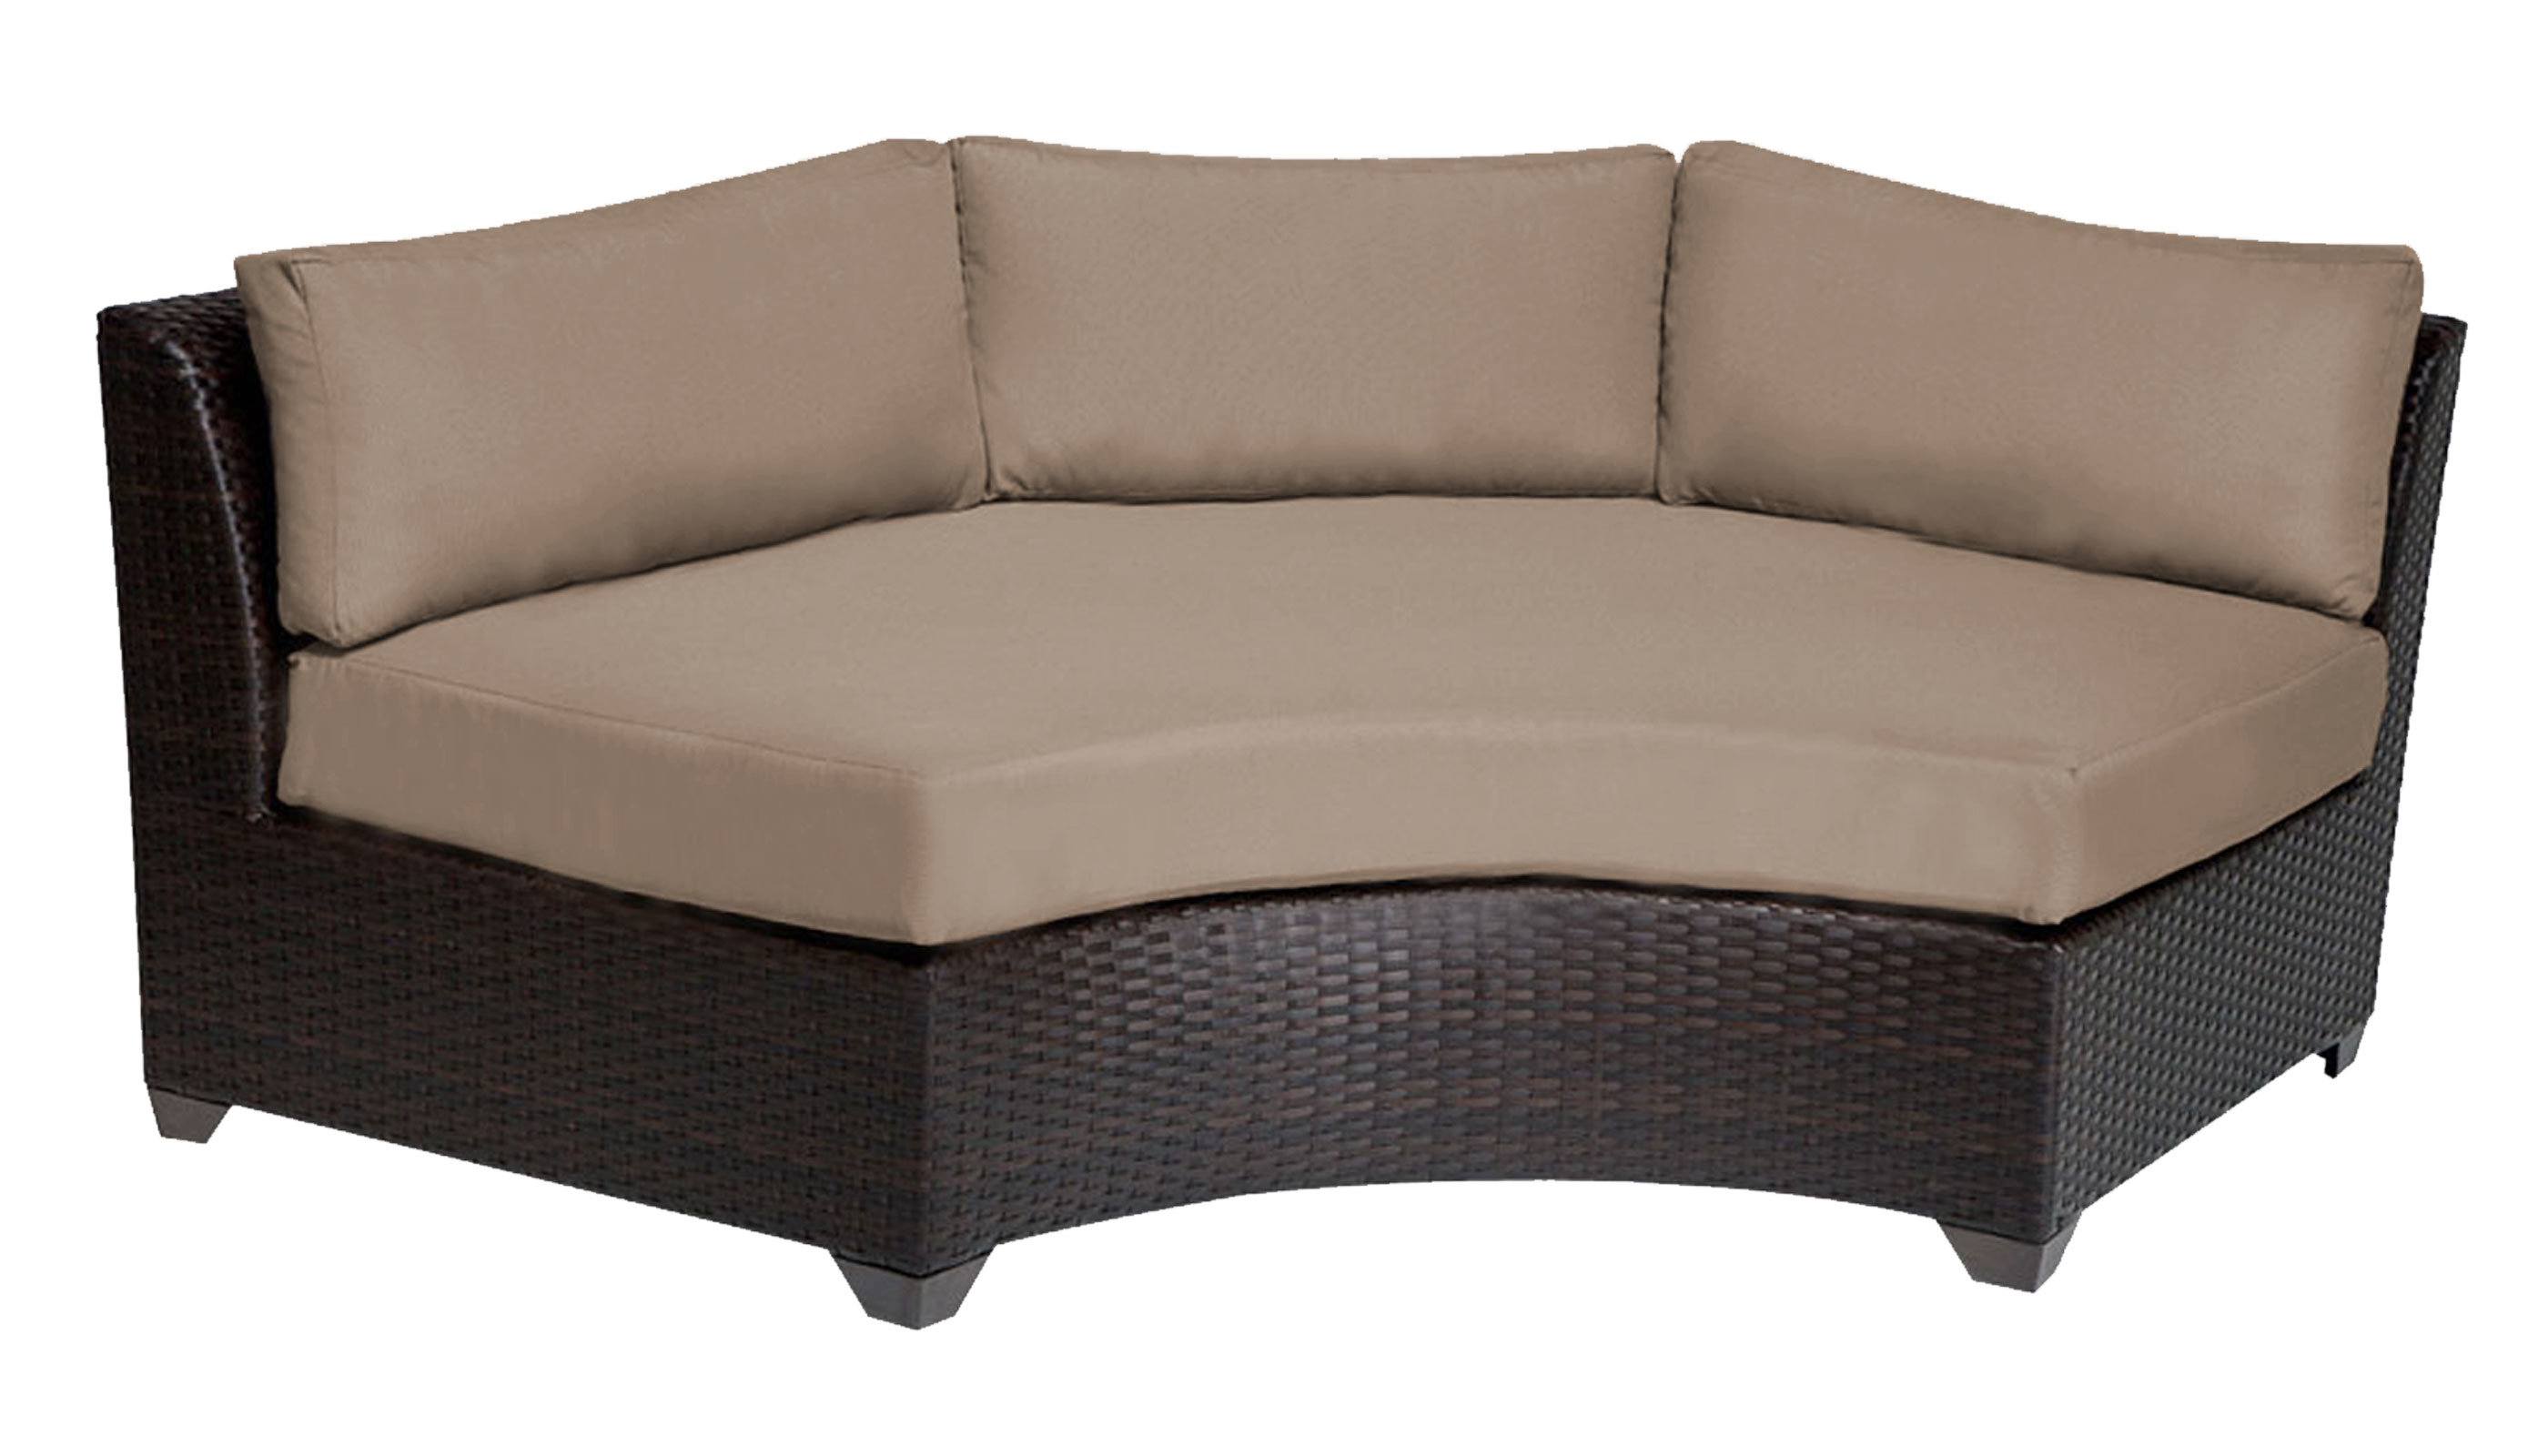 Camak Patio Sofas With Cushions Throughout Most Current Camak Patio Sofa With Cushions (View 4 of 20)